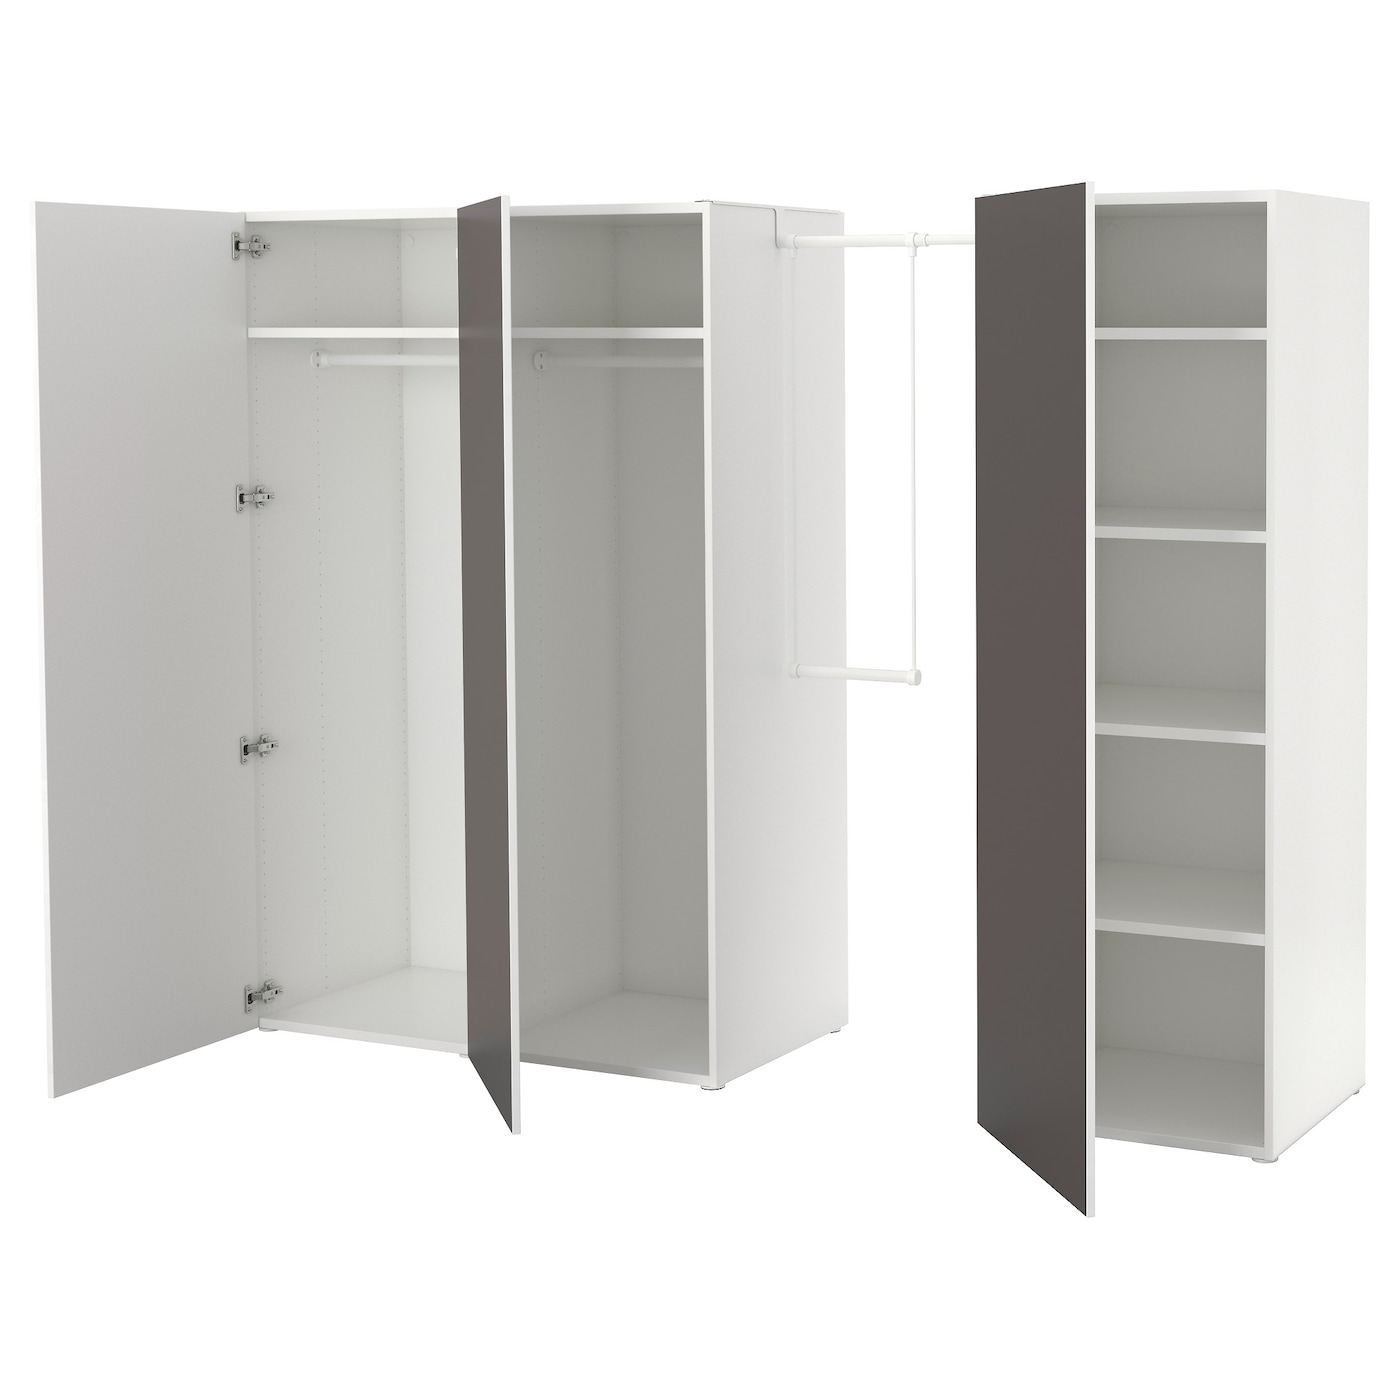 platsa wardrobe white skatval dark grey 215 240x57x181 cm ikea. Black Bedroom Furniture Sets. Home Design Ideas